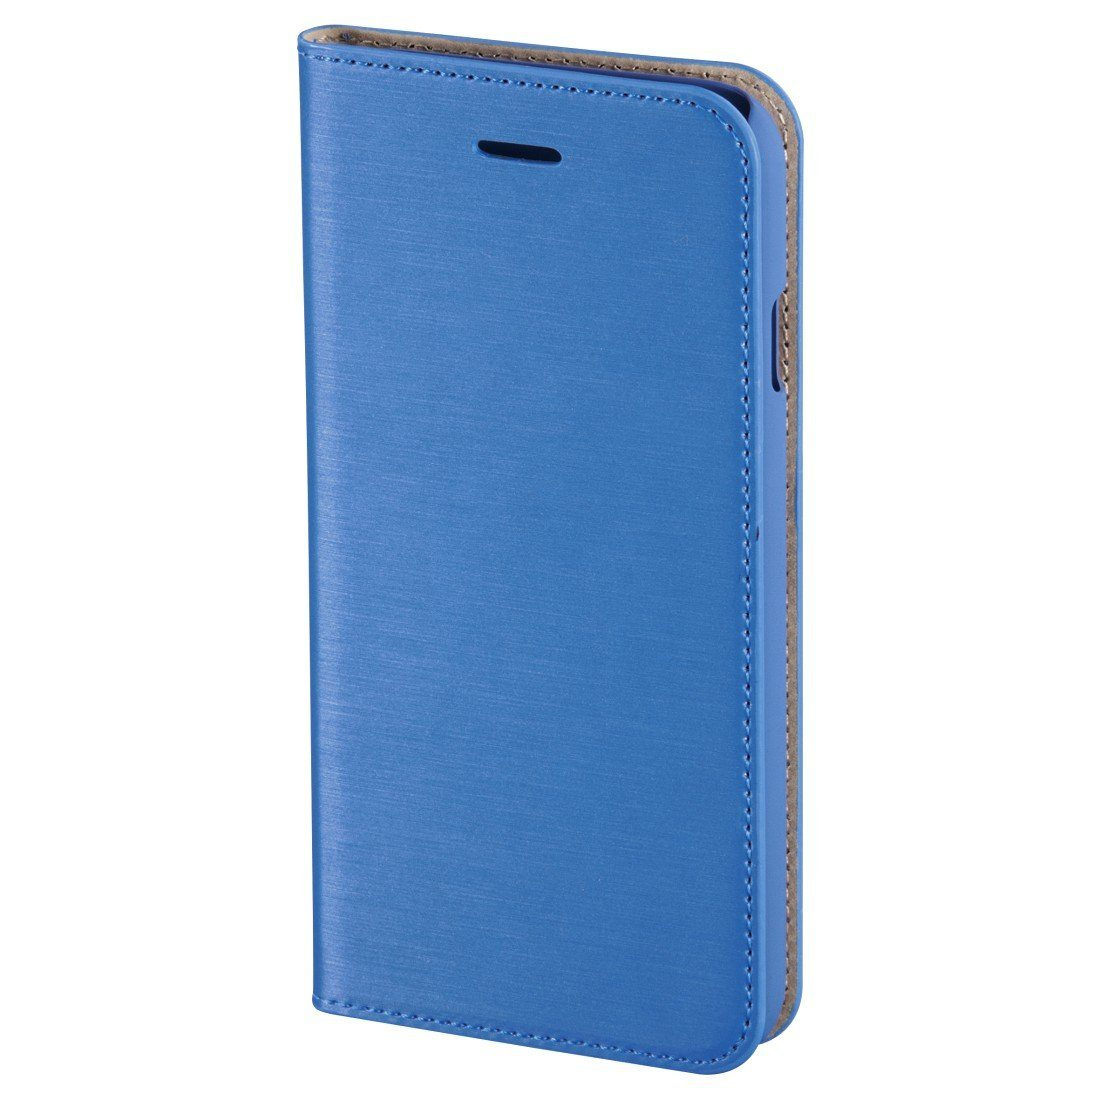 Hama Booklet Slim für Apple iPhone 6 Plus, Ozeanblau